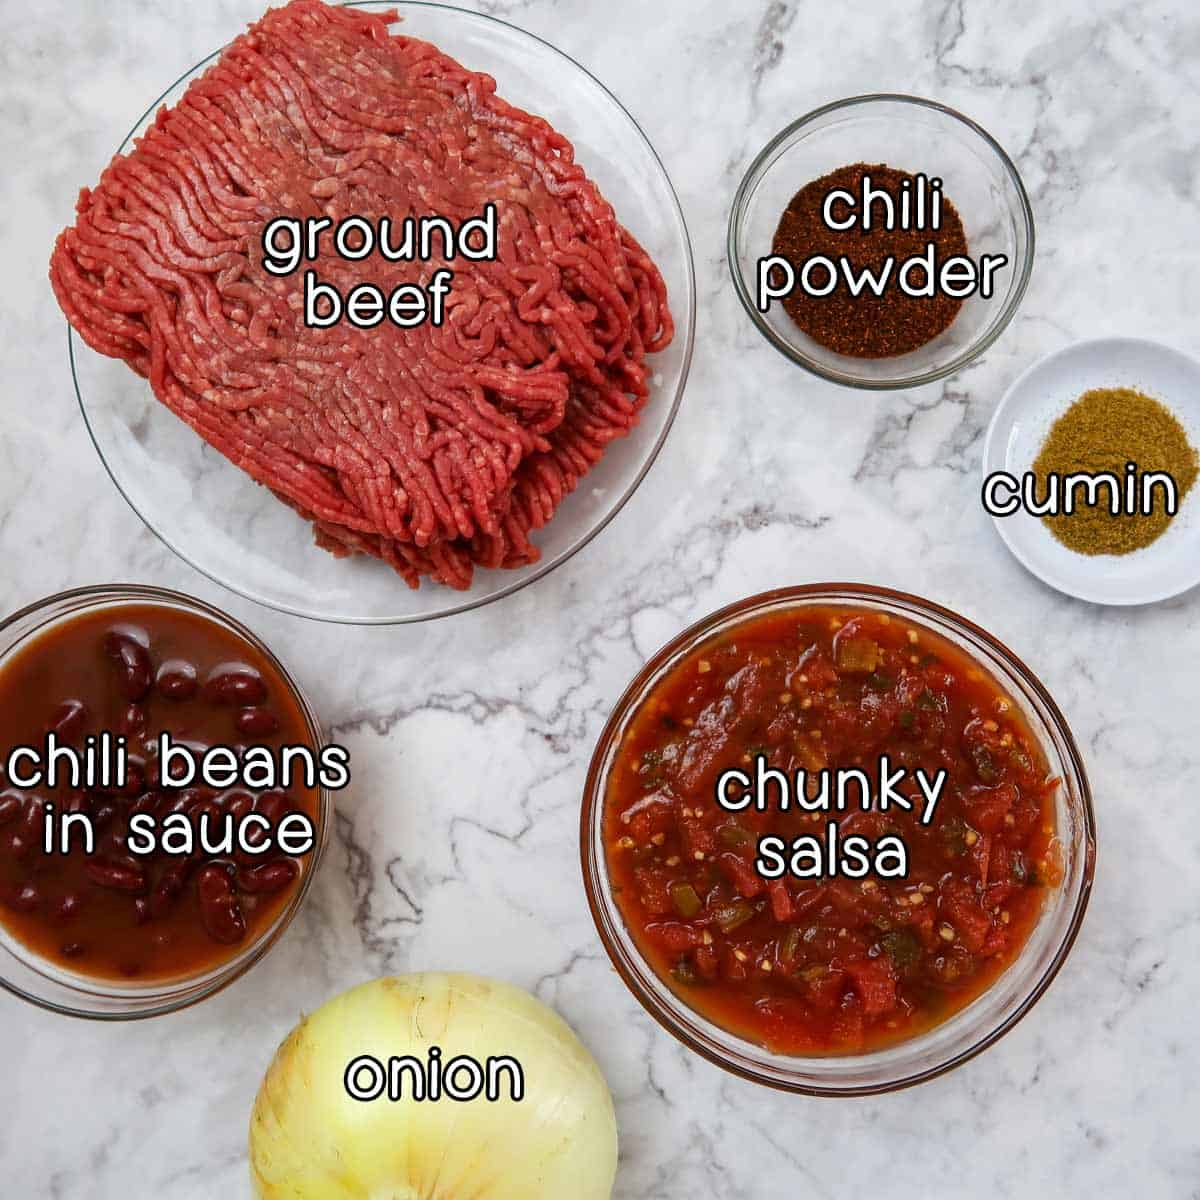 Overhead shot of ingredients- ground beef, chili powder, cumin, chili beans in sauce, chunky salsa, and an onion.